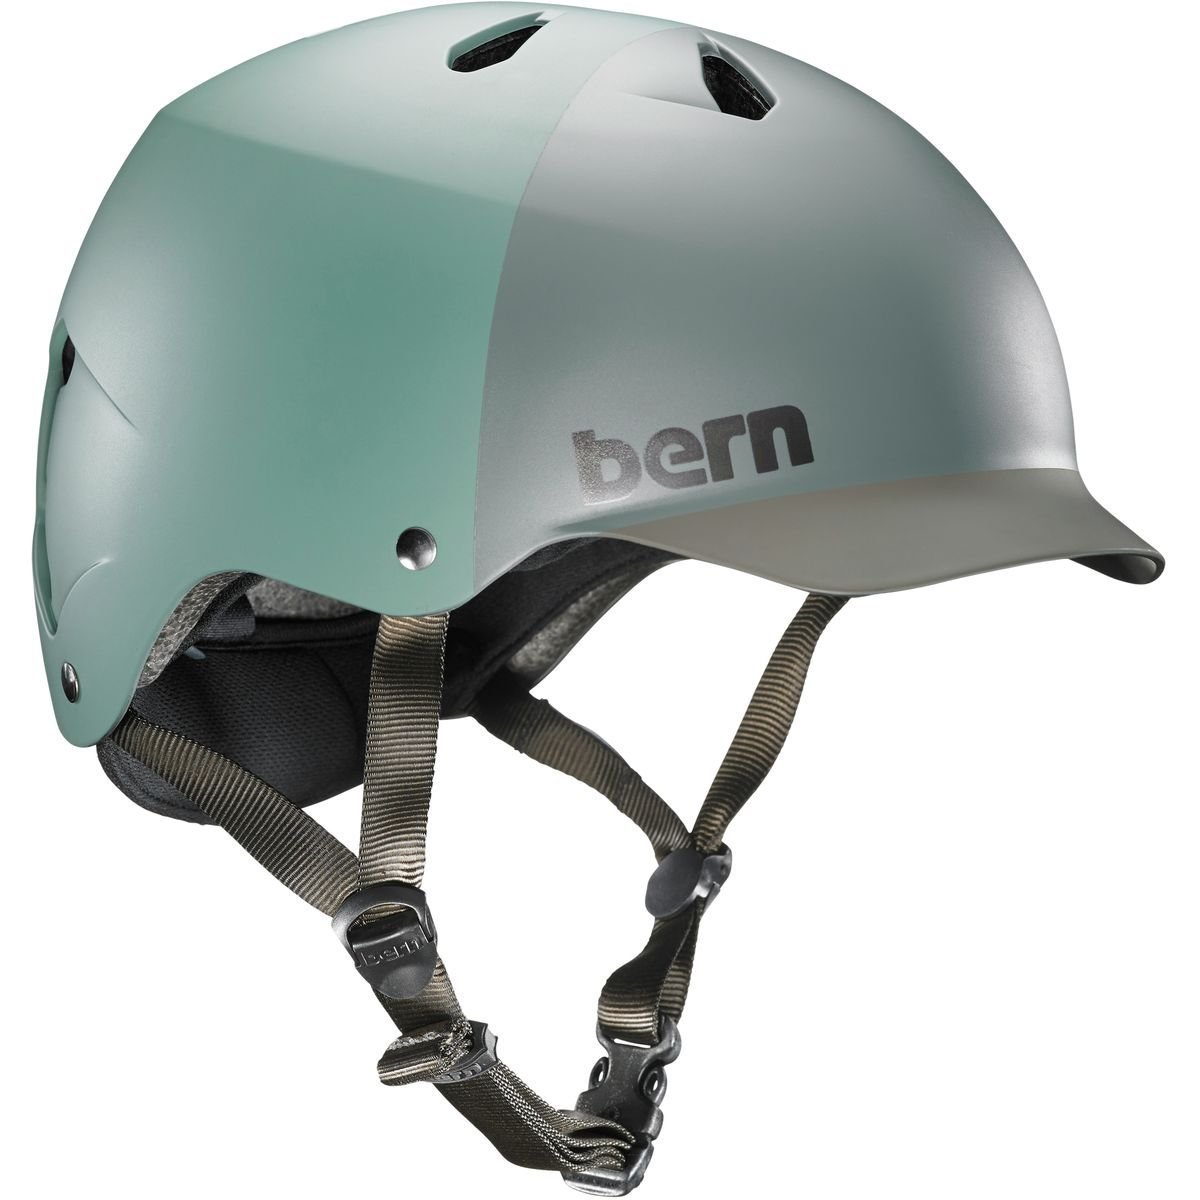 Medium Bern Bicycle Helmets